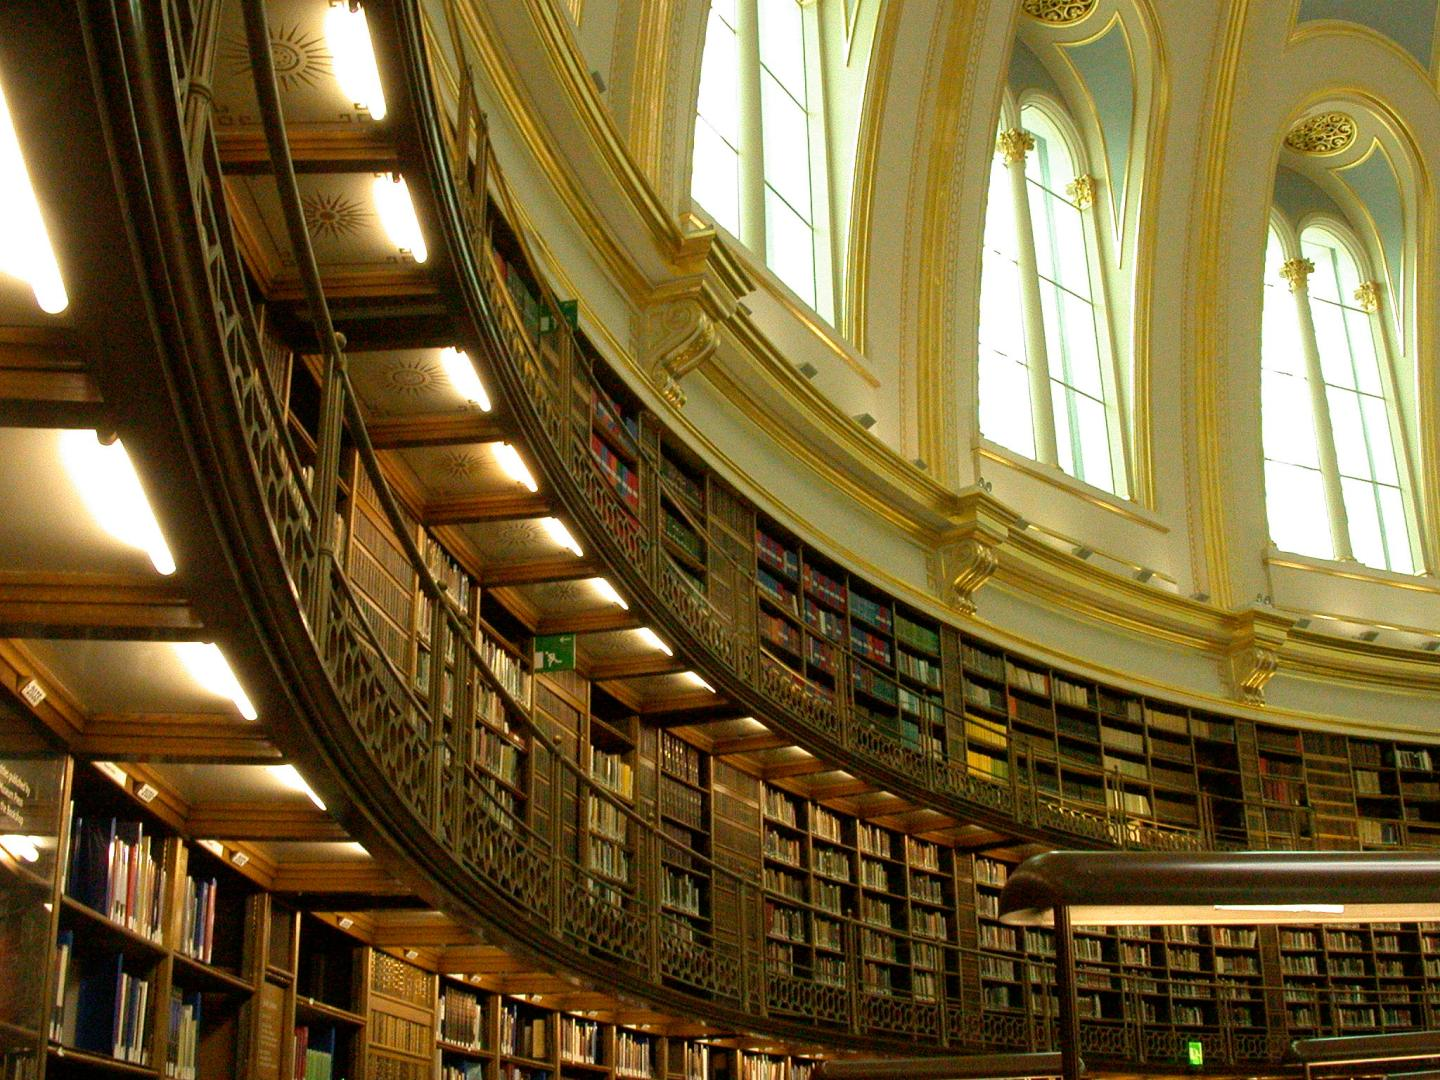 The Reading Room of the British Museum.